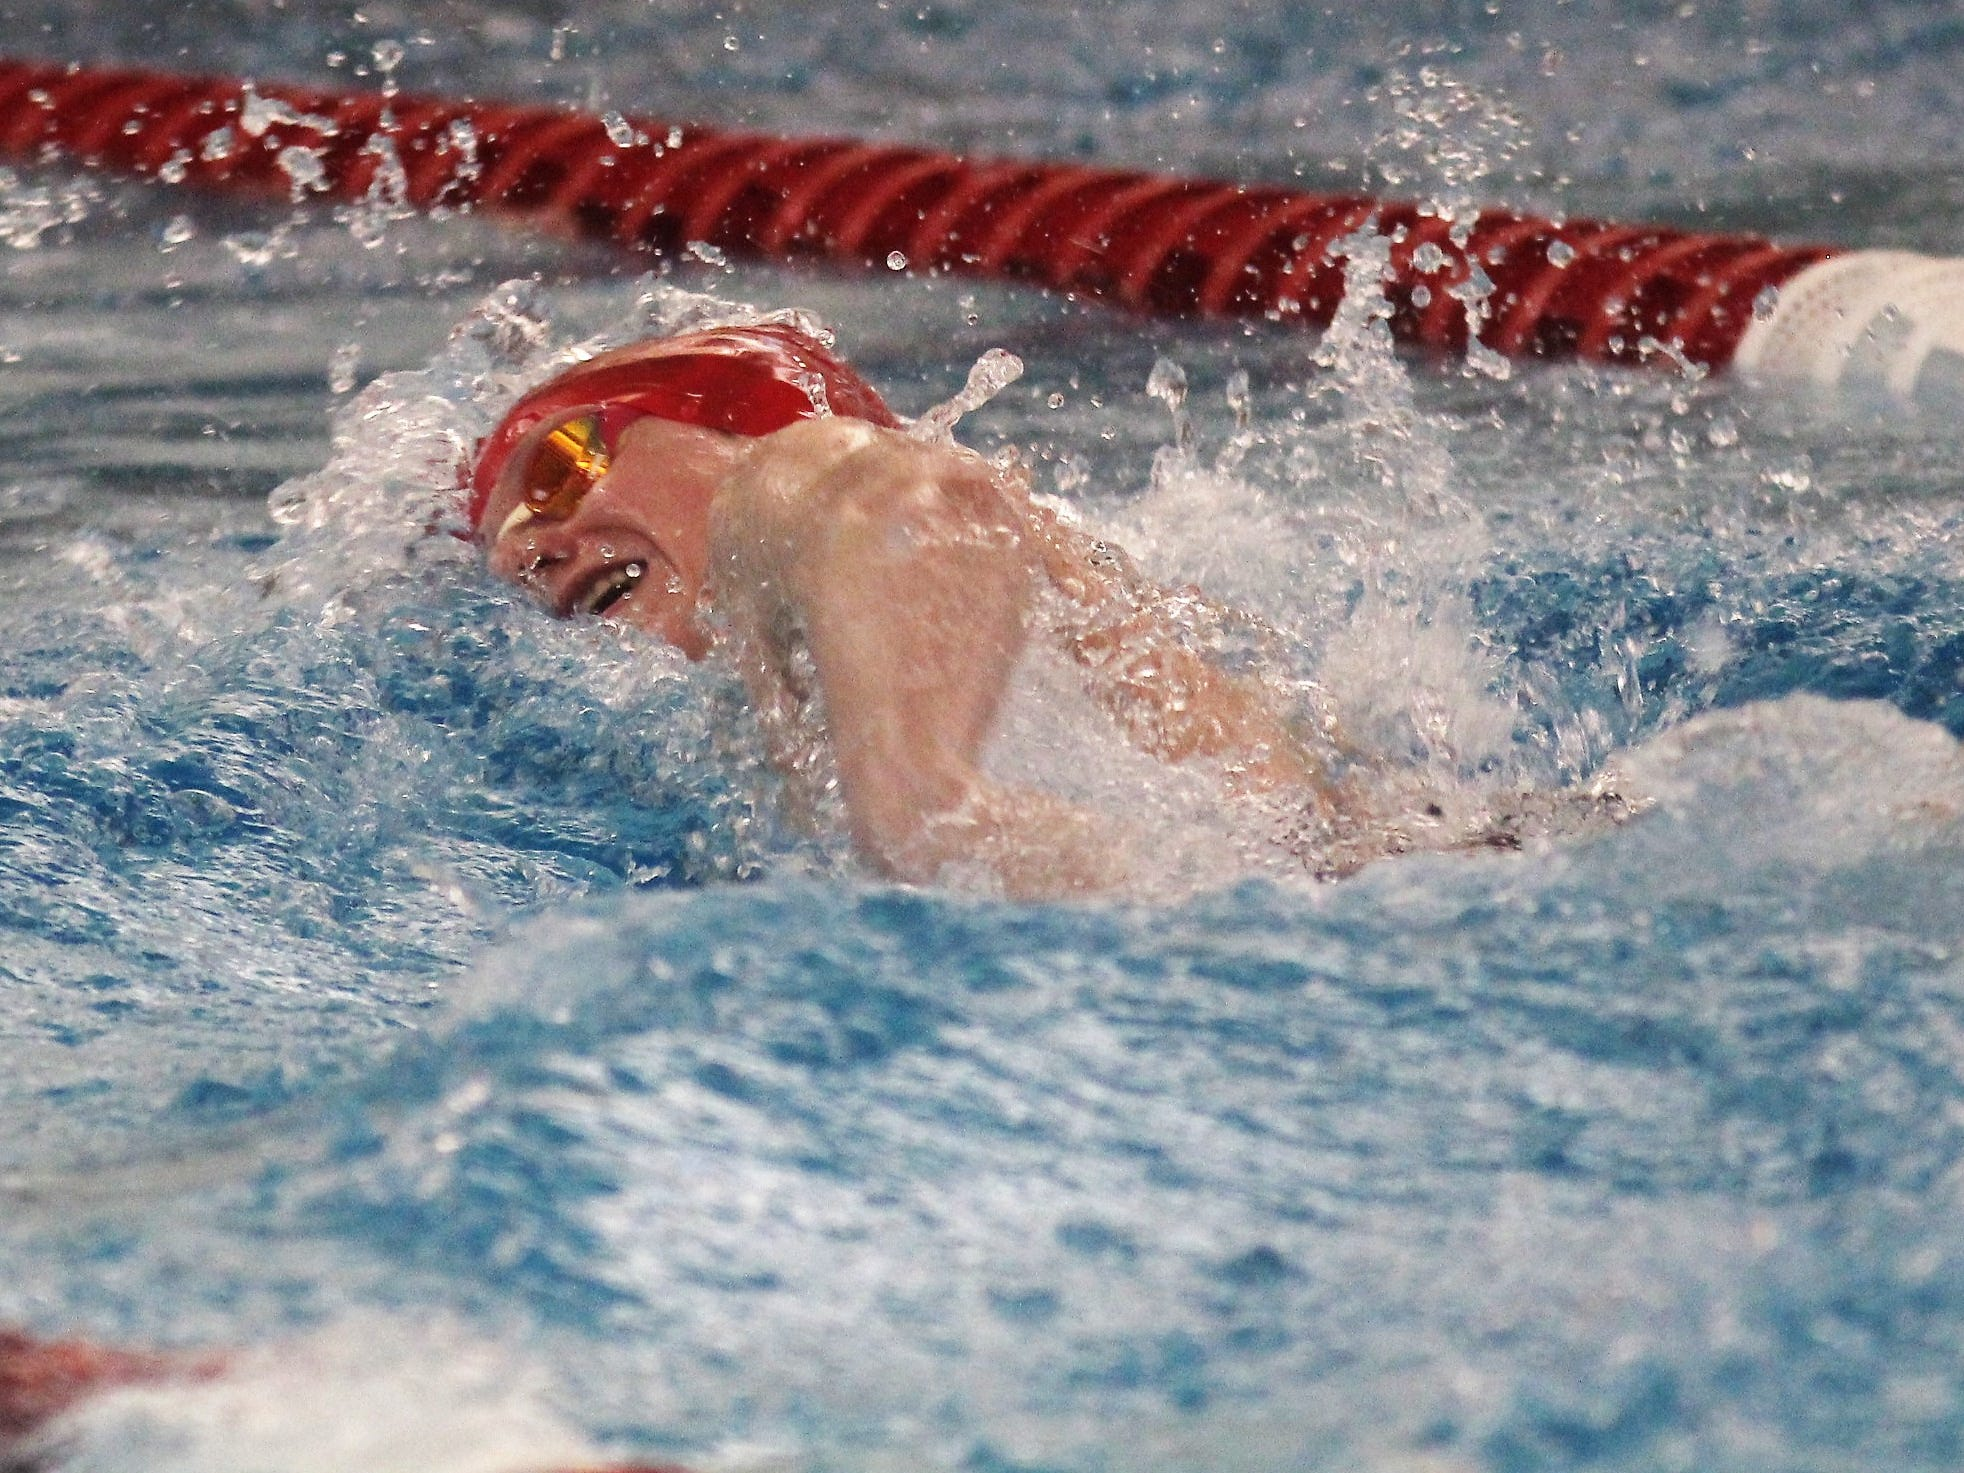 Beechwood sophomore Eli Shoyat in the 200 freestyle during the KHSAA state boys swimming and diving championship Feb. 22, 2019 at the University of Louisville.